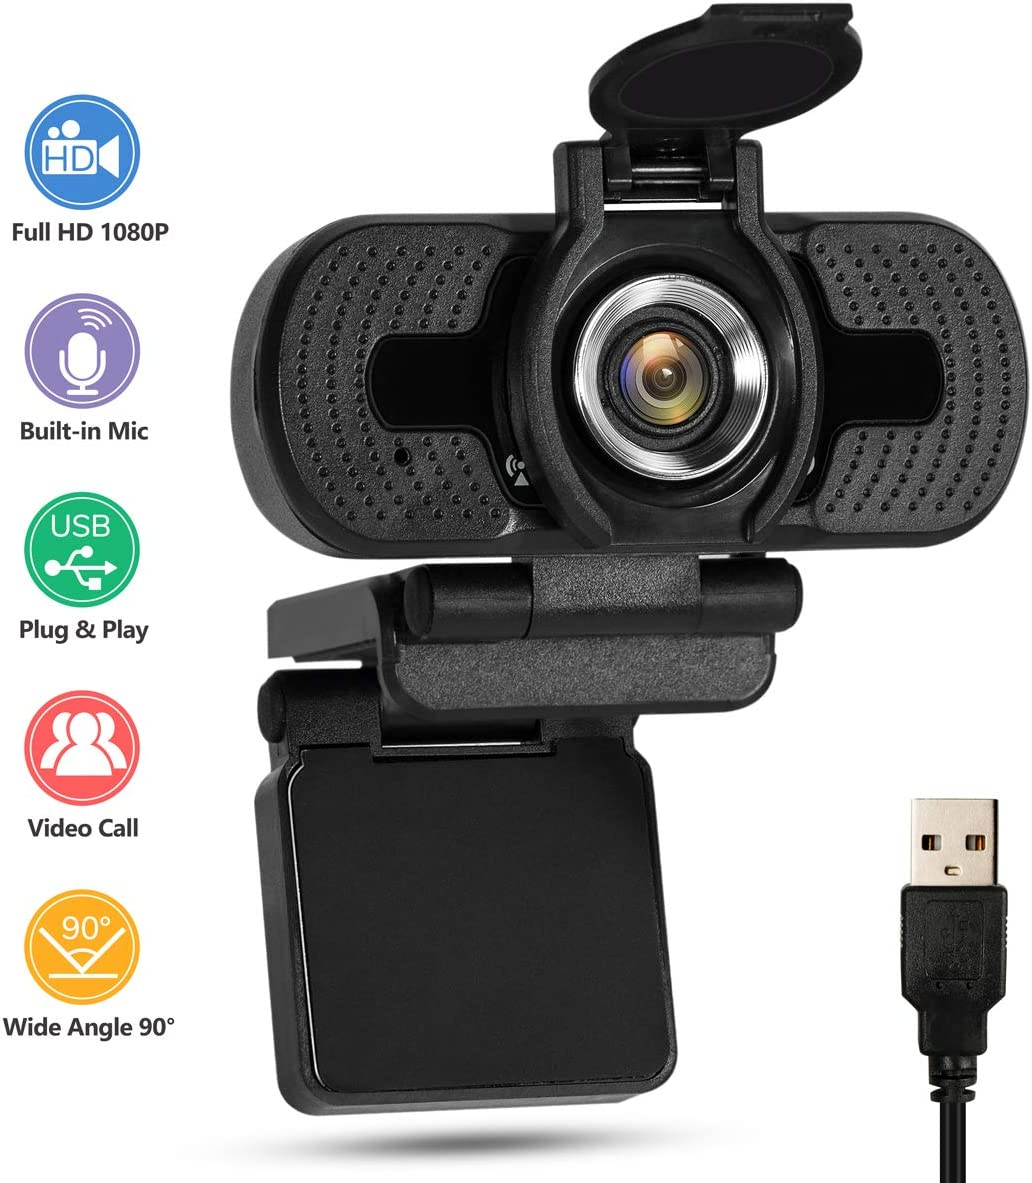 Girovo 2020 Full HD 1080P Webcam with Microphone and Privacy Cover, 90°Wide-Angle View, Fixed Focus USB Camera Plug and Play for PC/Mac Laptop/Desktop Video Calling Recording Conferencing